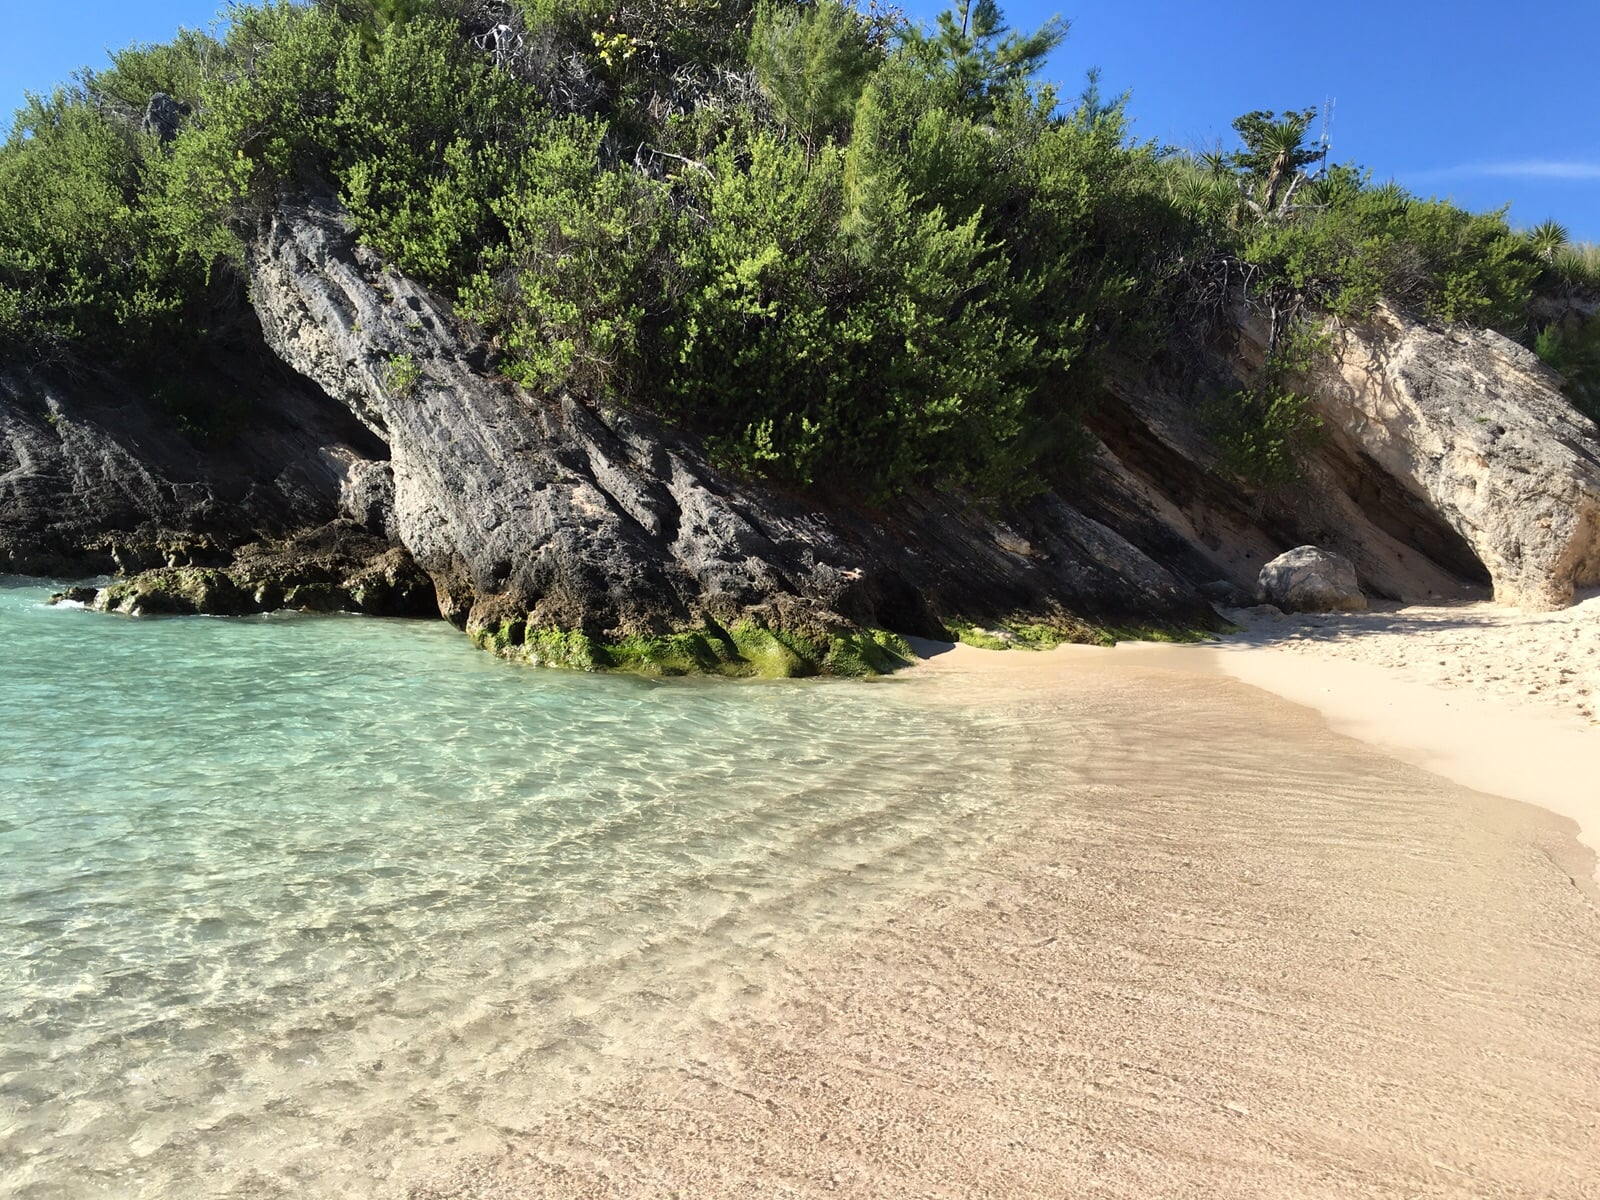 The most amazing cove - all to ourselves! (photo by my friend sk)